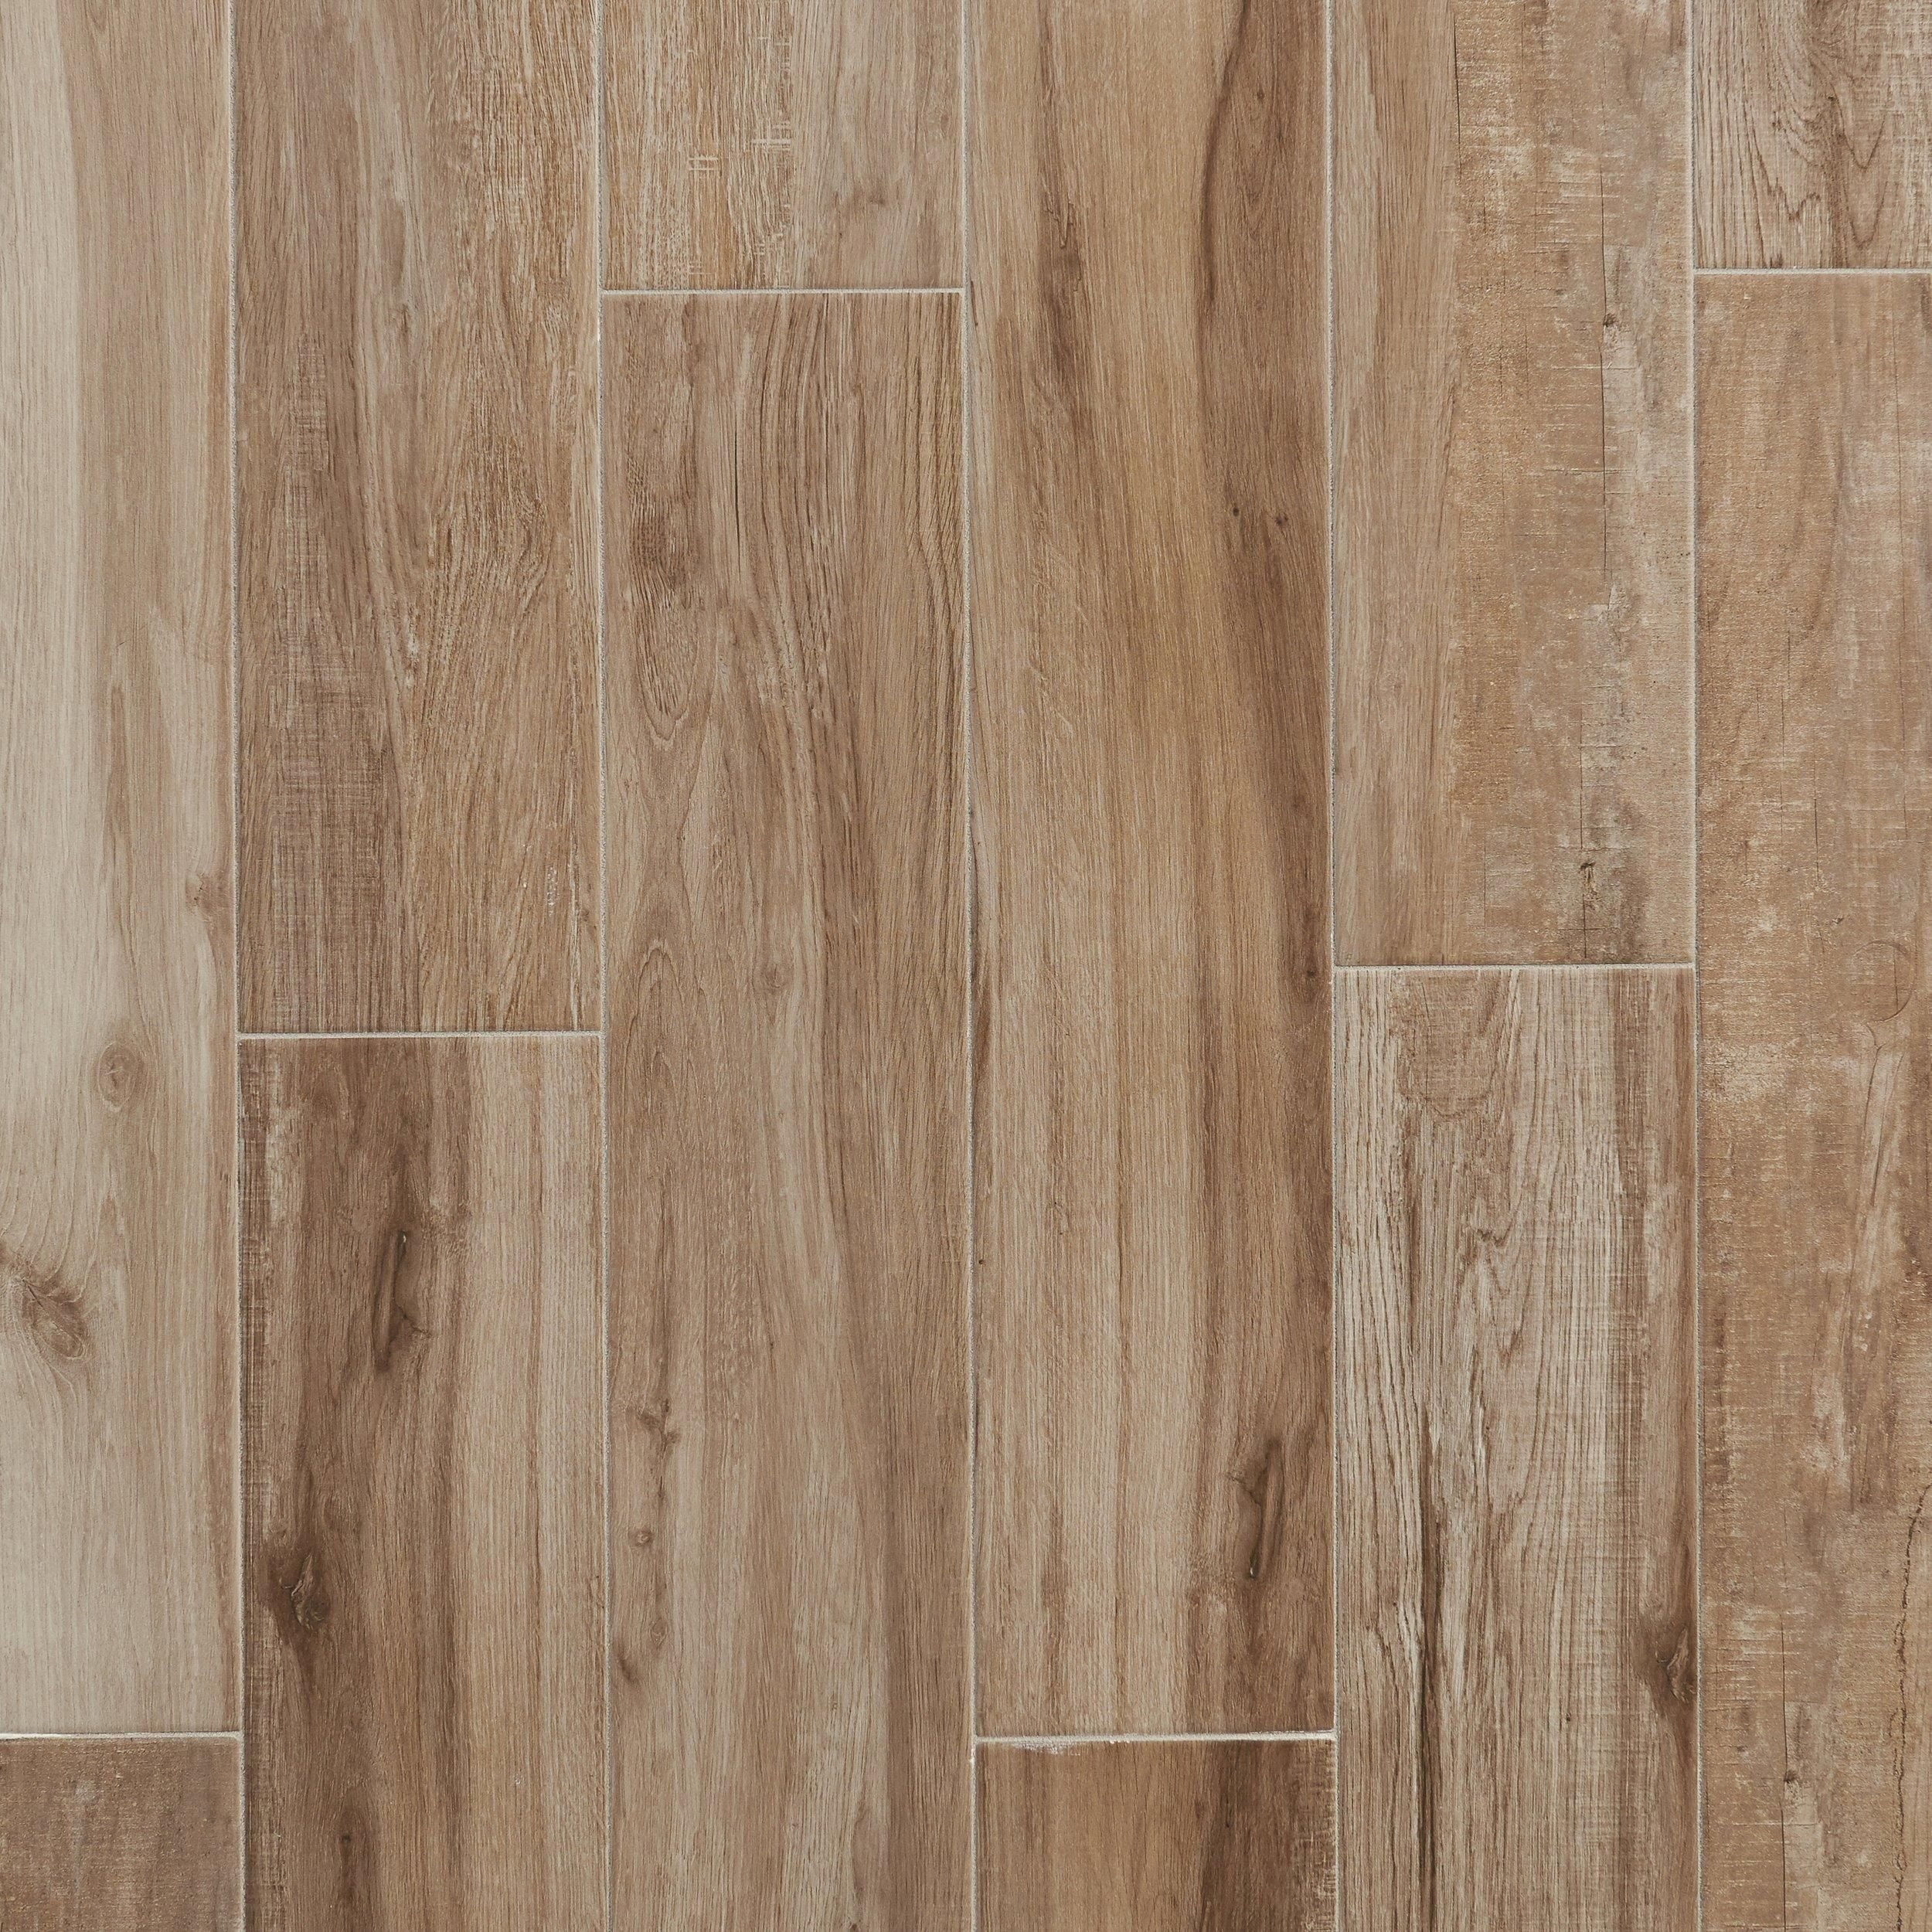 Bryce Canyon Timber Wood Plank Ceramic Tile Living Room